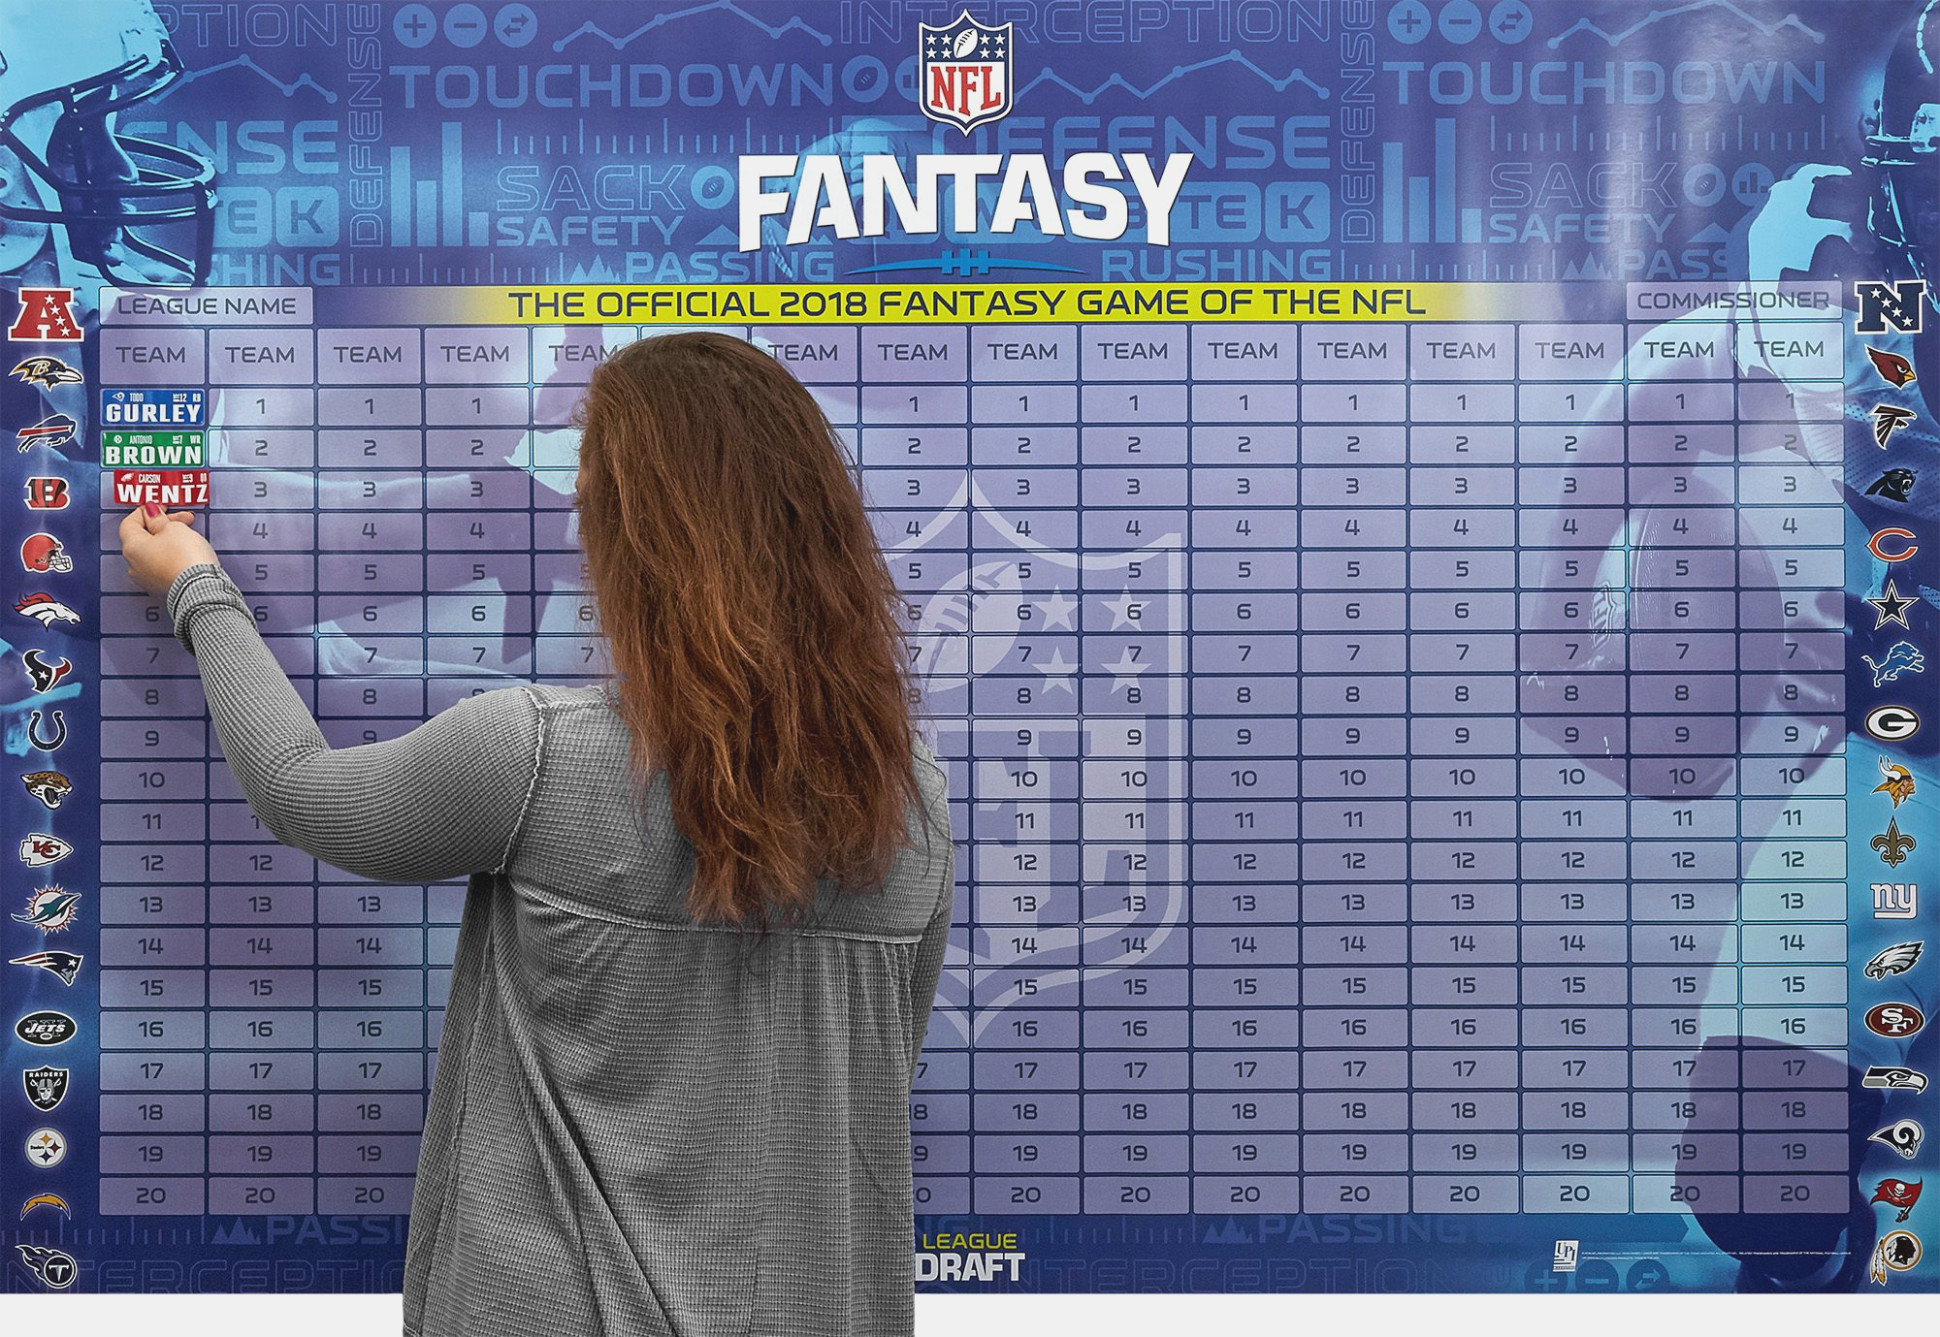 Free Fantasy Football Draft Board Kit | Footballupdate - Free Fantasy Football Draft Kit Printable